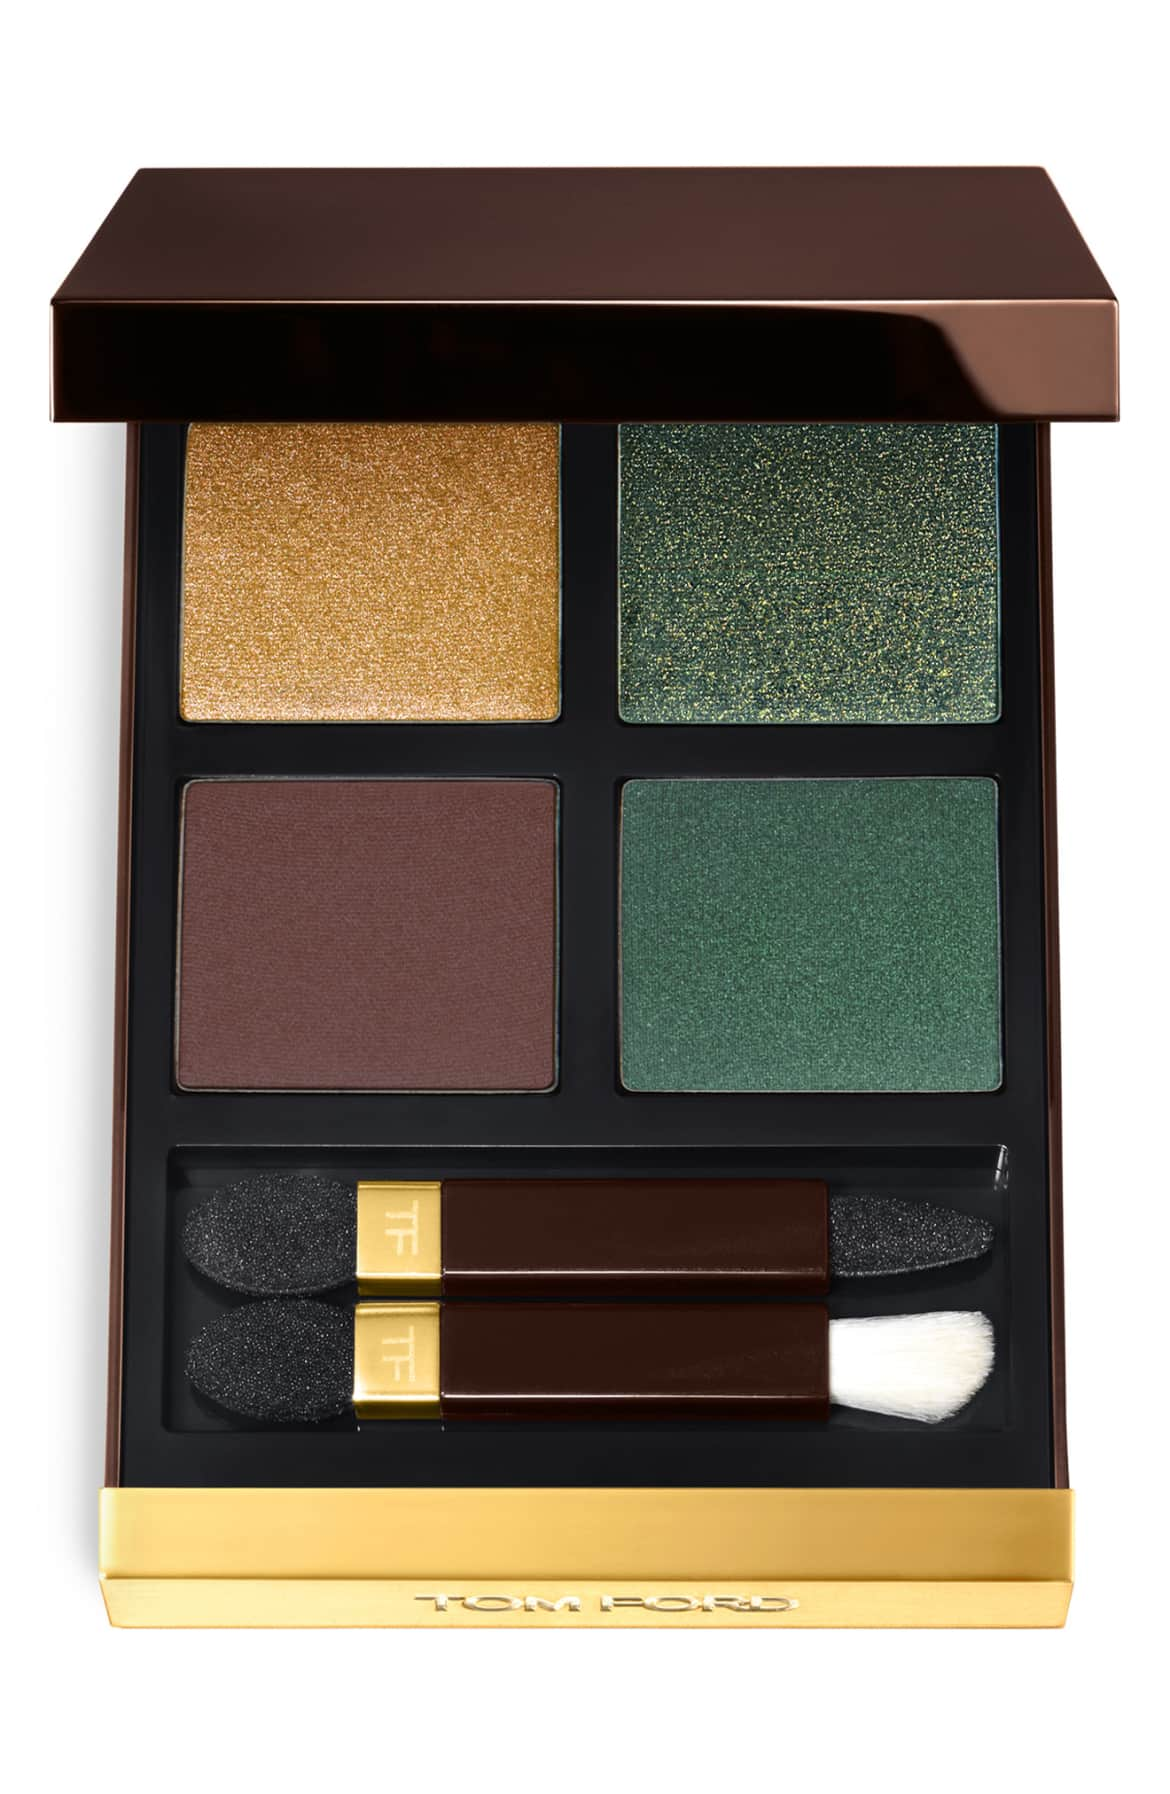 What it is: A palette of four coordinated eyeshadows in sparkling to matte finishes designed to create soft to bold iconic Tom Ford eyes. $88 (Image: Nordstrom){ }